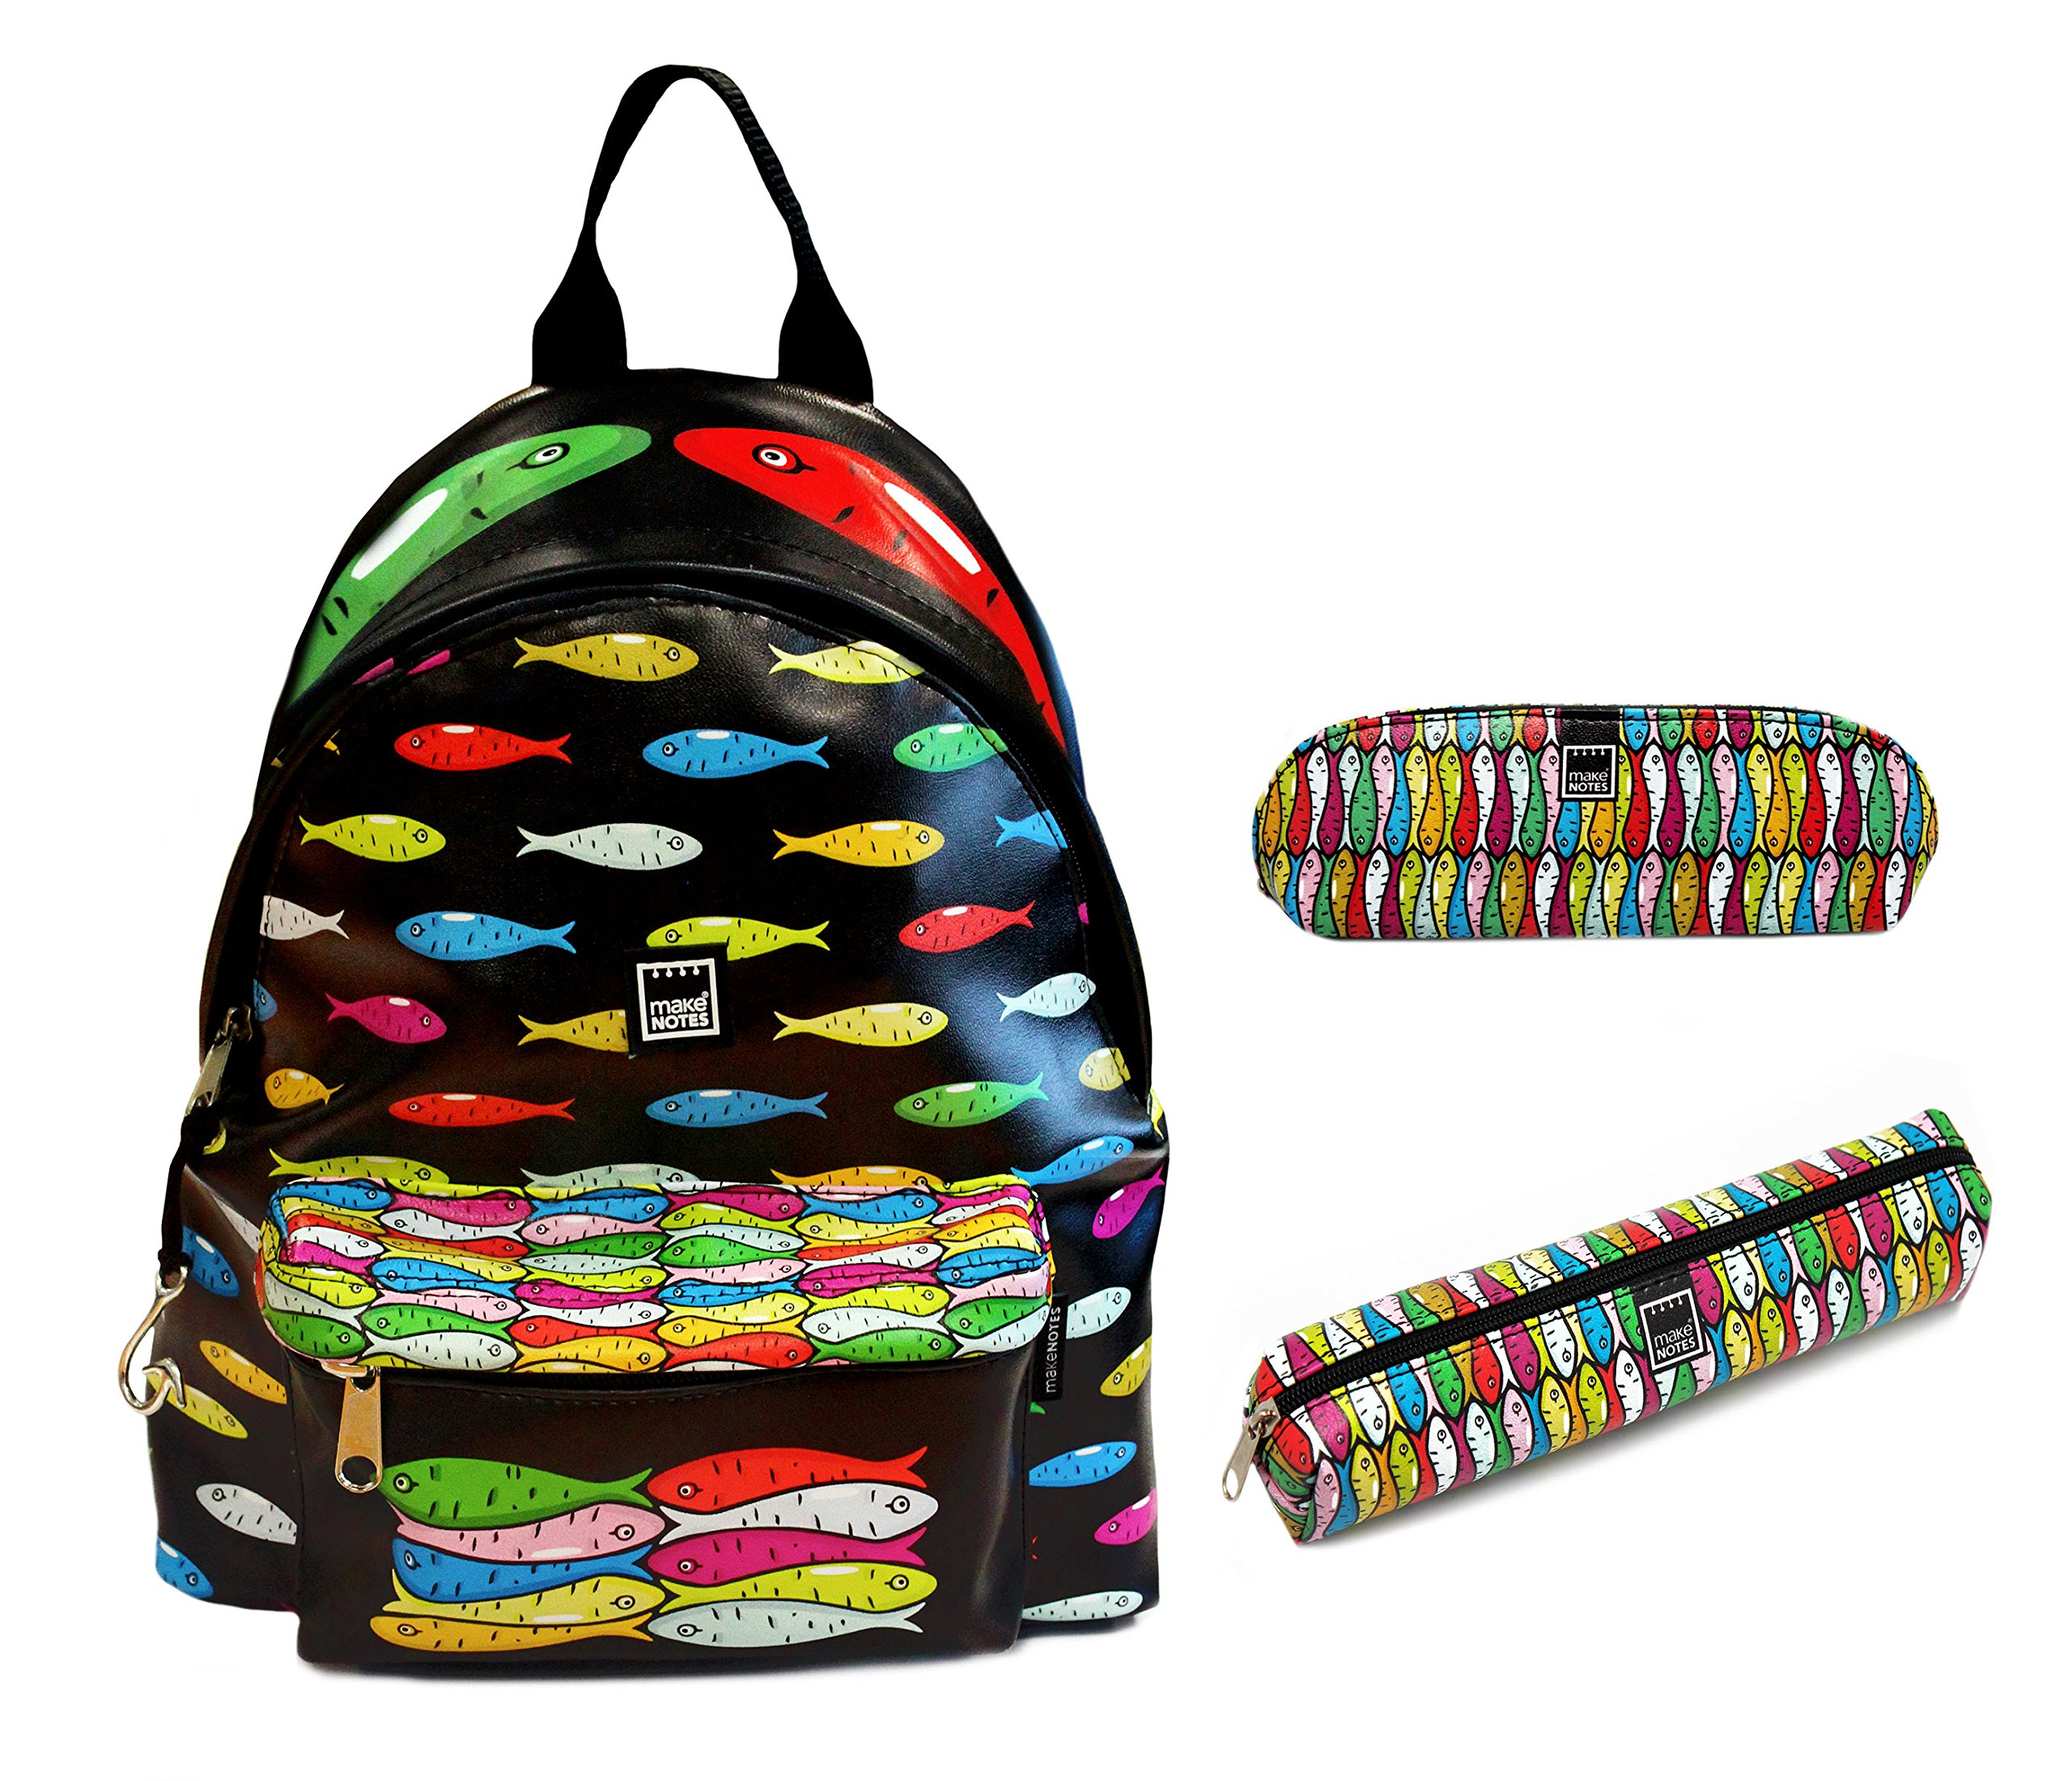 Small Backpack Set. (Style SARDINES, Pencil Case (Small) , Eyeglass Case) by Make Notes